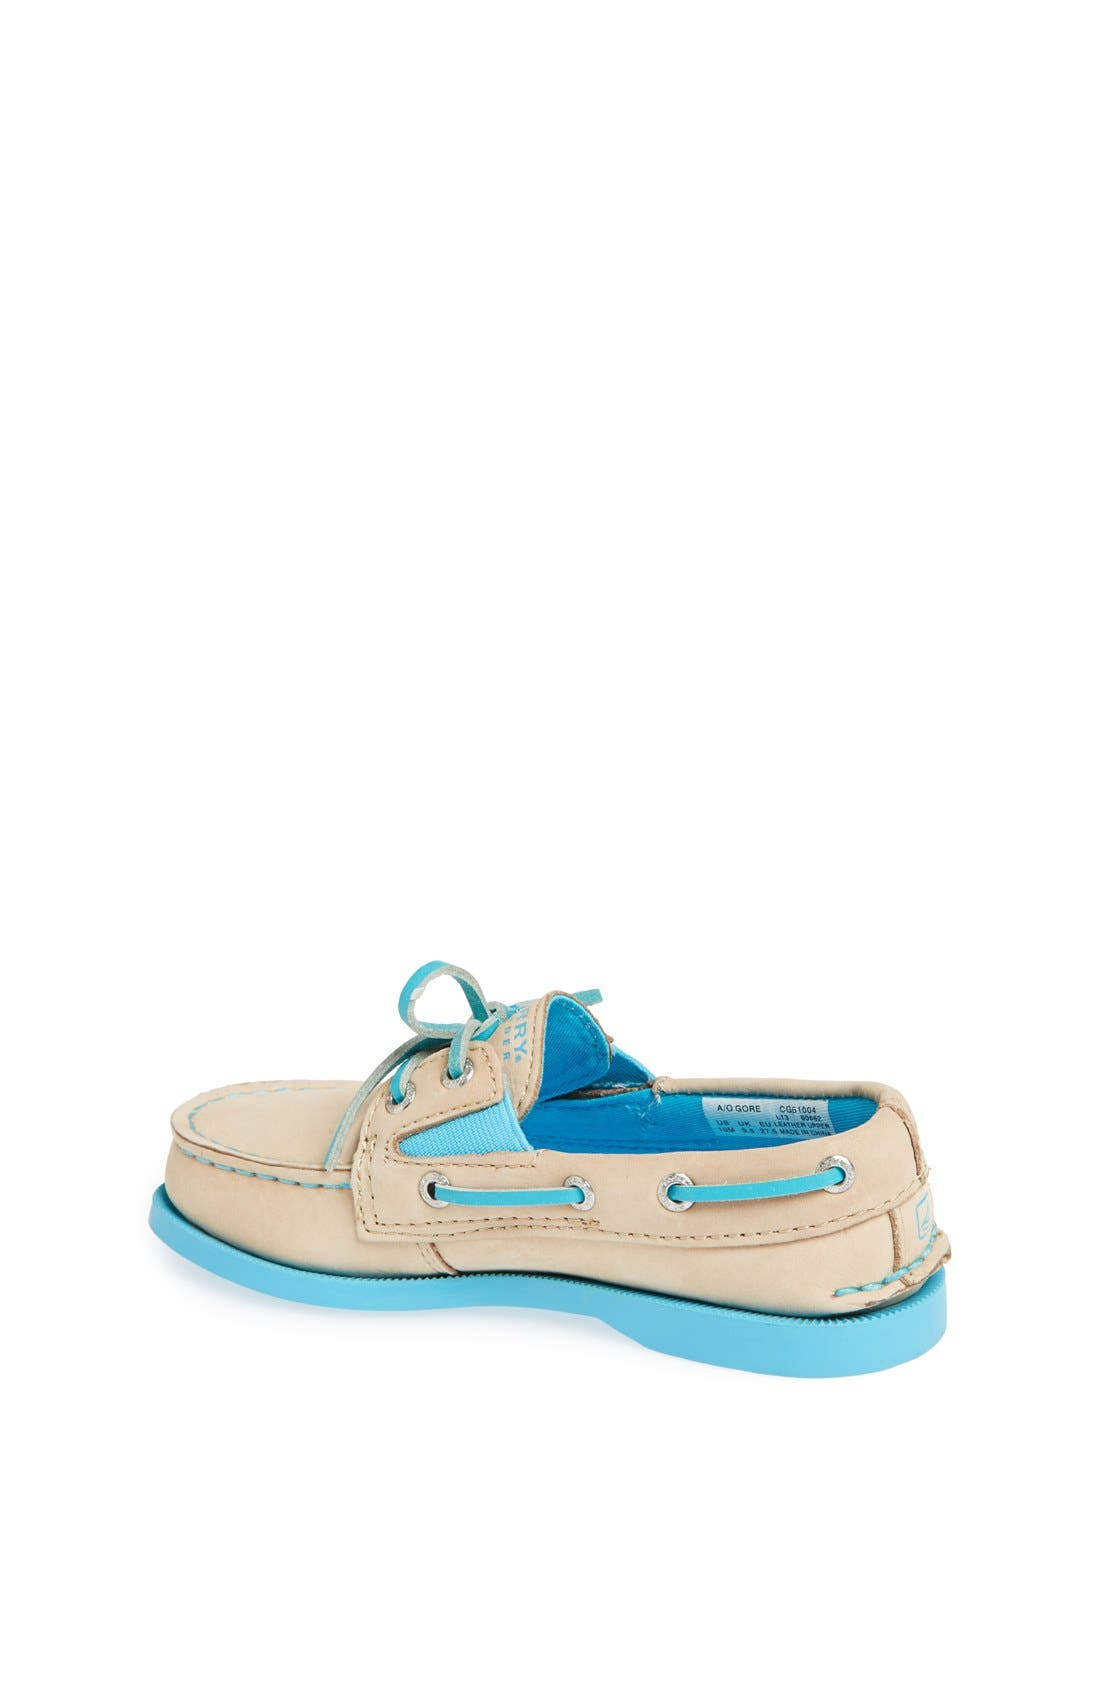 Alternate Image 2  - Sperry Top-Sider® Kids 'Authentic Original' Boat Shoe (Walker, Toddler, Little Kid & Big Kid)